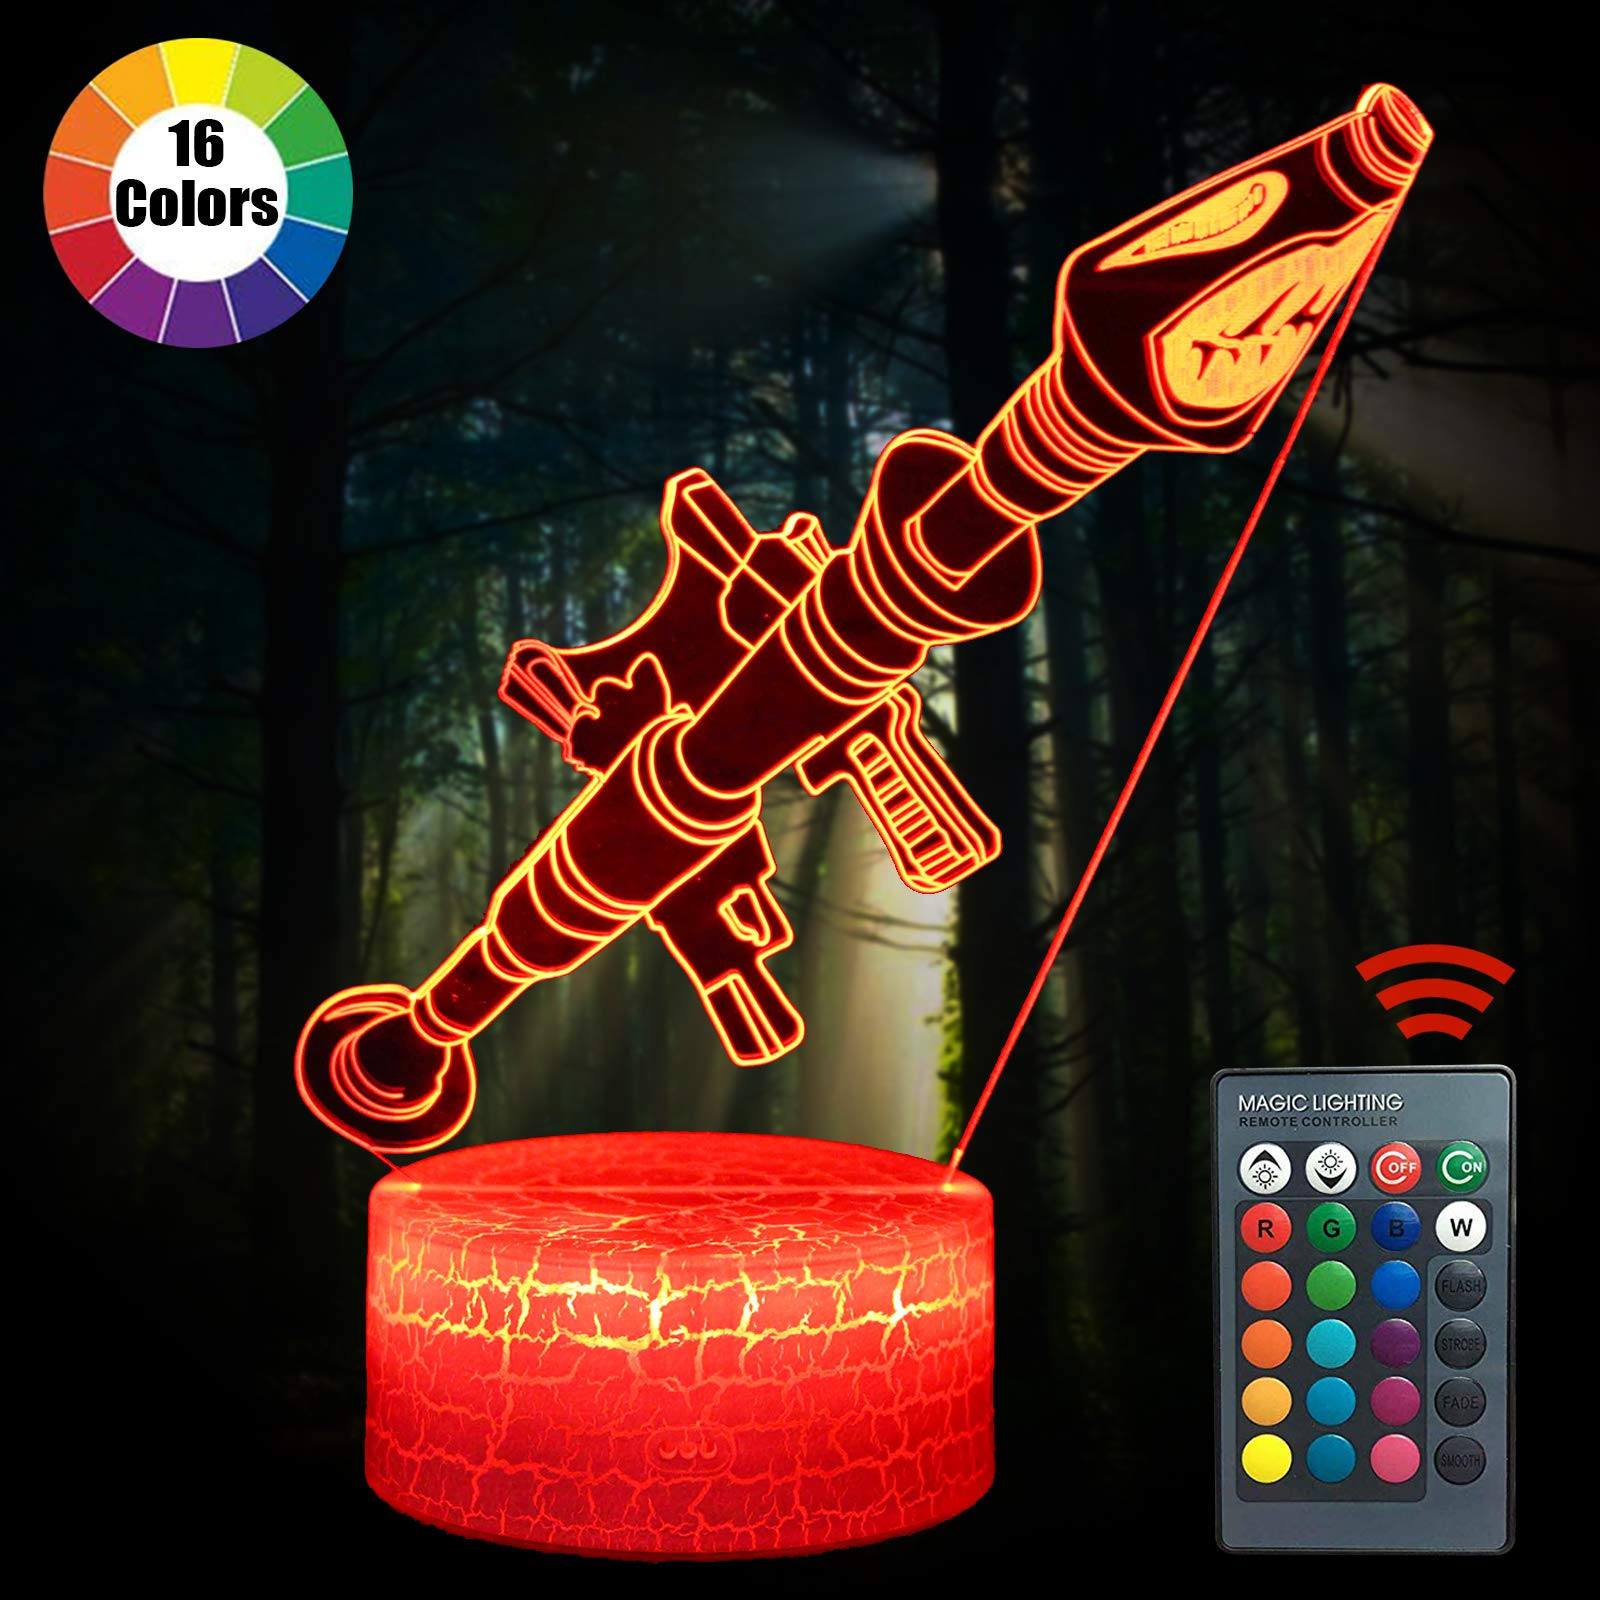 Fortress Night Light Rokter Launcher Changeable USB Touch LED Lamp Lights Lampada 3D Visual Bulbing lampen Children's Room Decor Holiday Light (Rokter Launcher)